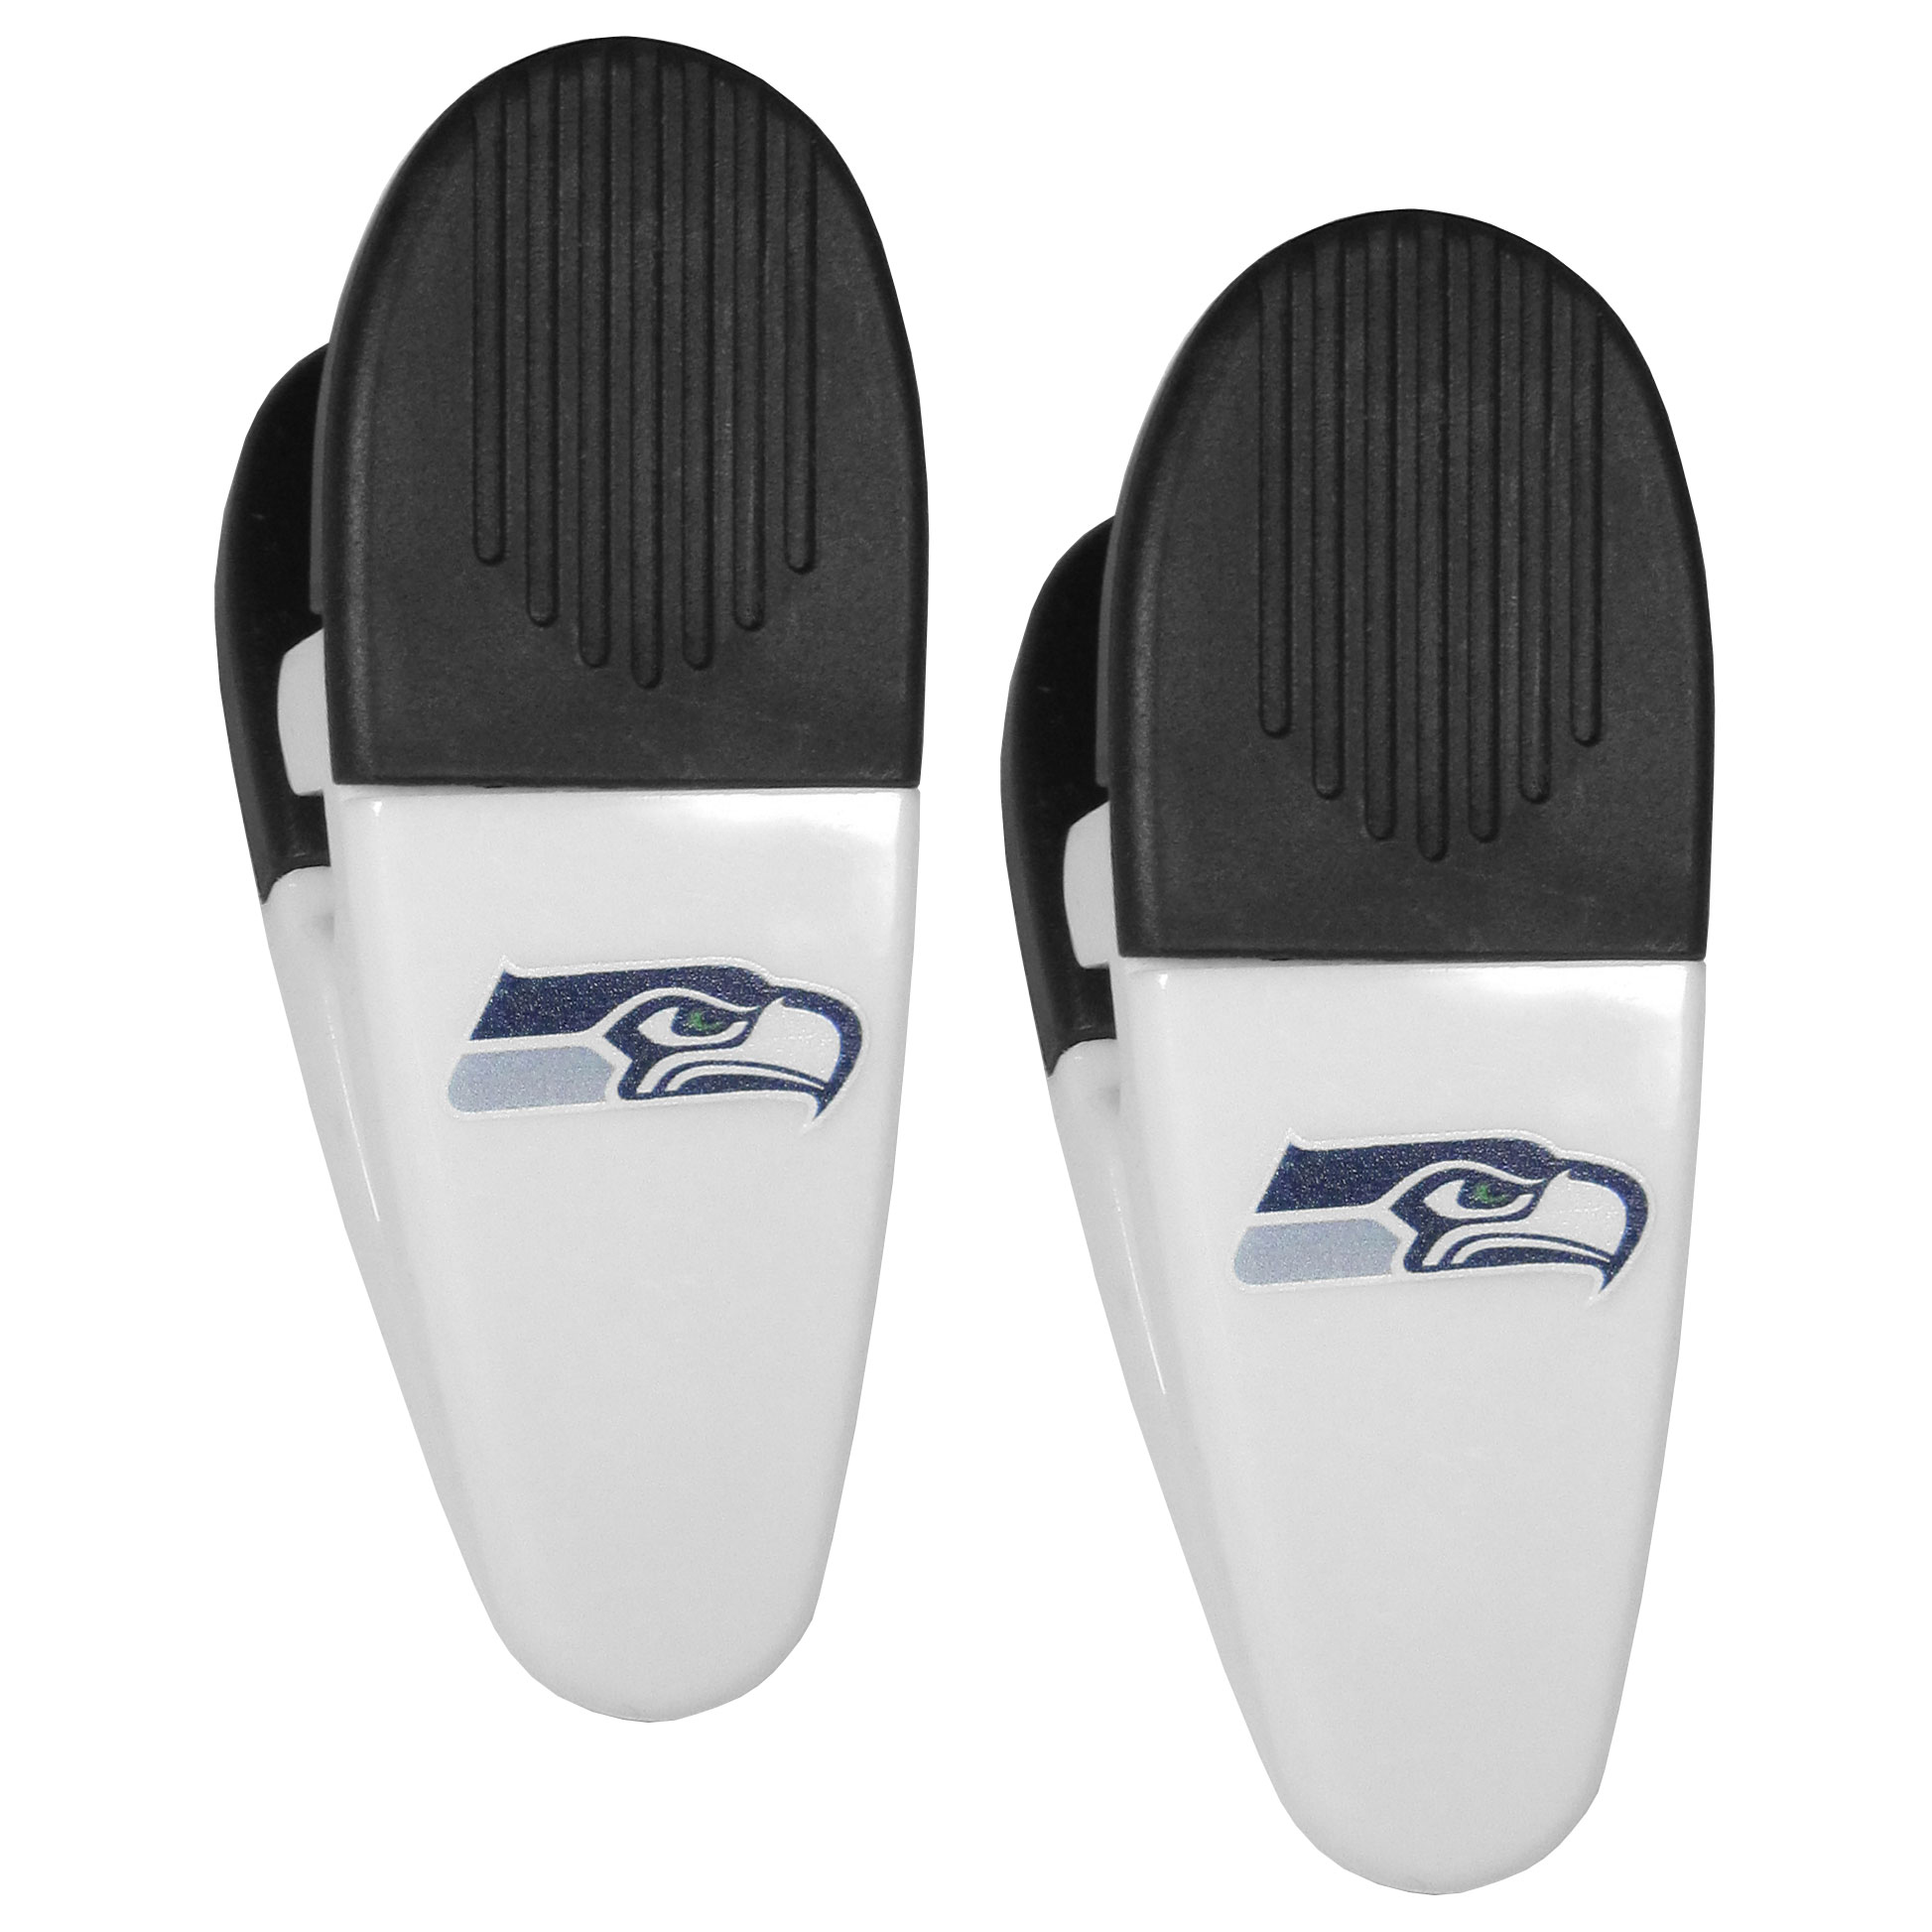 Seattle Seahawks Mini Chip Clip Magnets, 2 pk - Our Seattle Seahawks chip clip magnets feature a crisp team logo on the front of the clip. The clip is perfect for sealing chips for freshness and with the powerful magnet on the back it can be used to attach notes to the fridge or hanging your child's artwork. Set of 2 magnet clips, each clip is 3.5 inches tall and 1.25 inch wide.